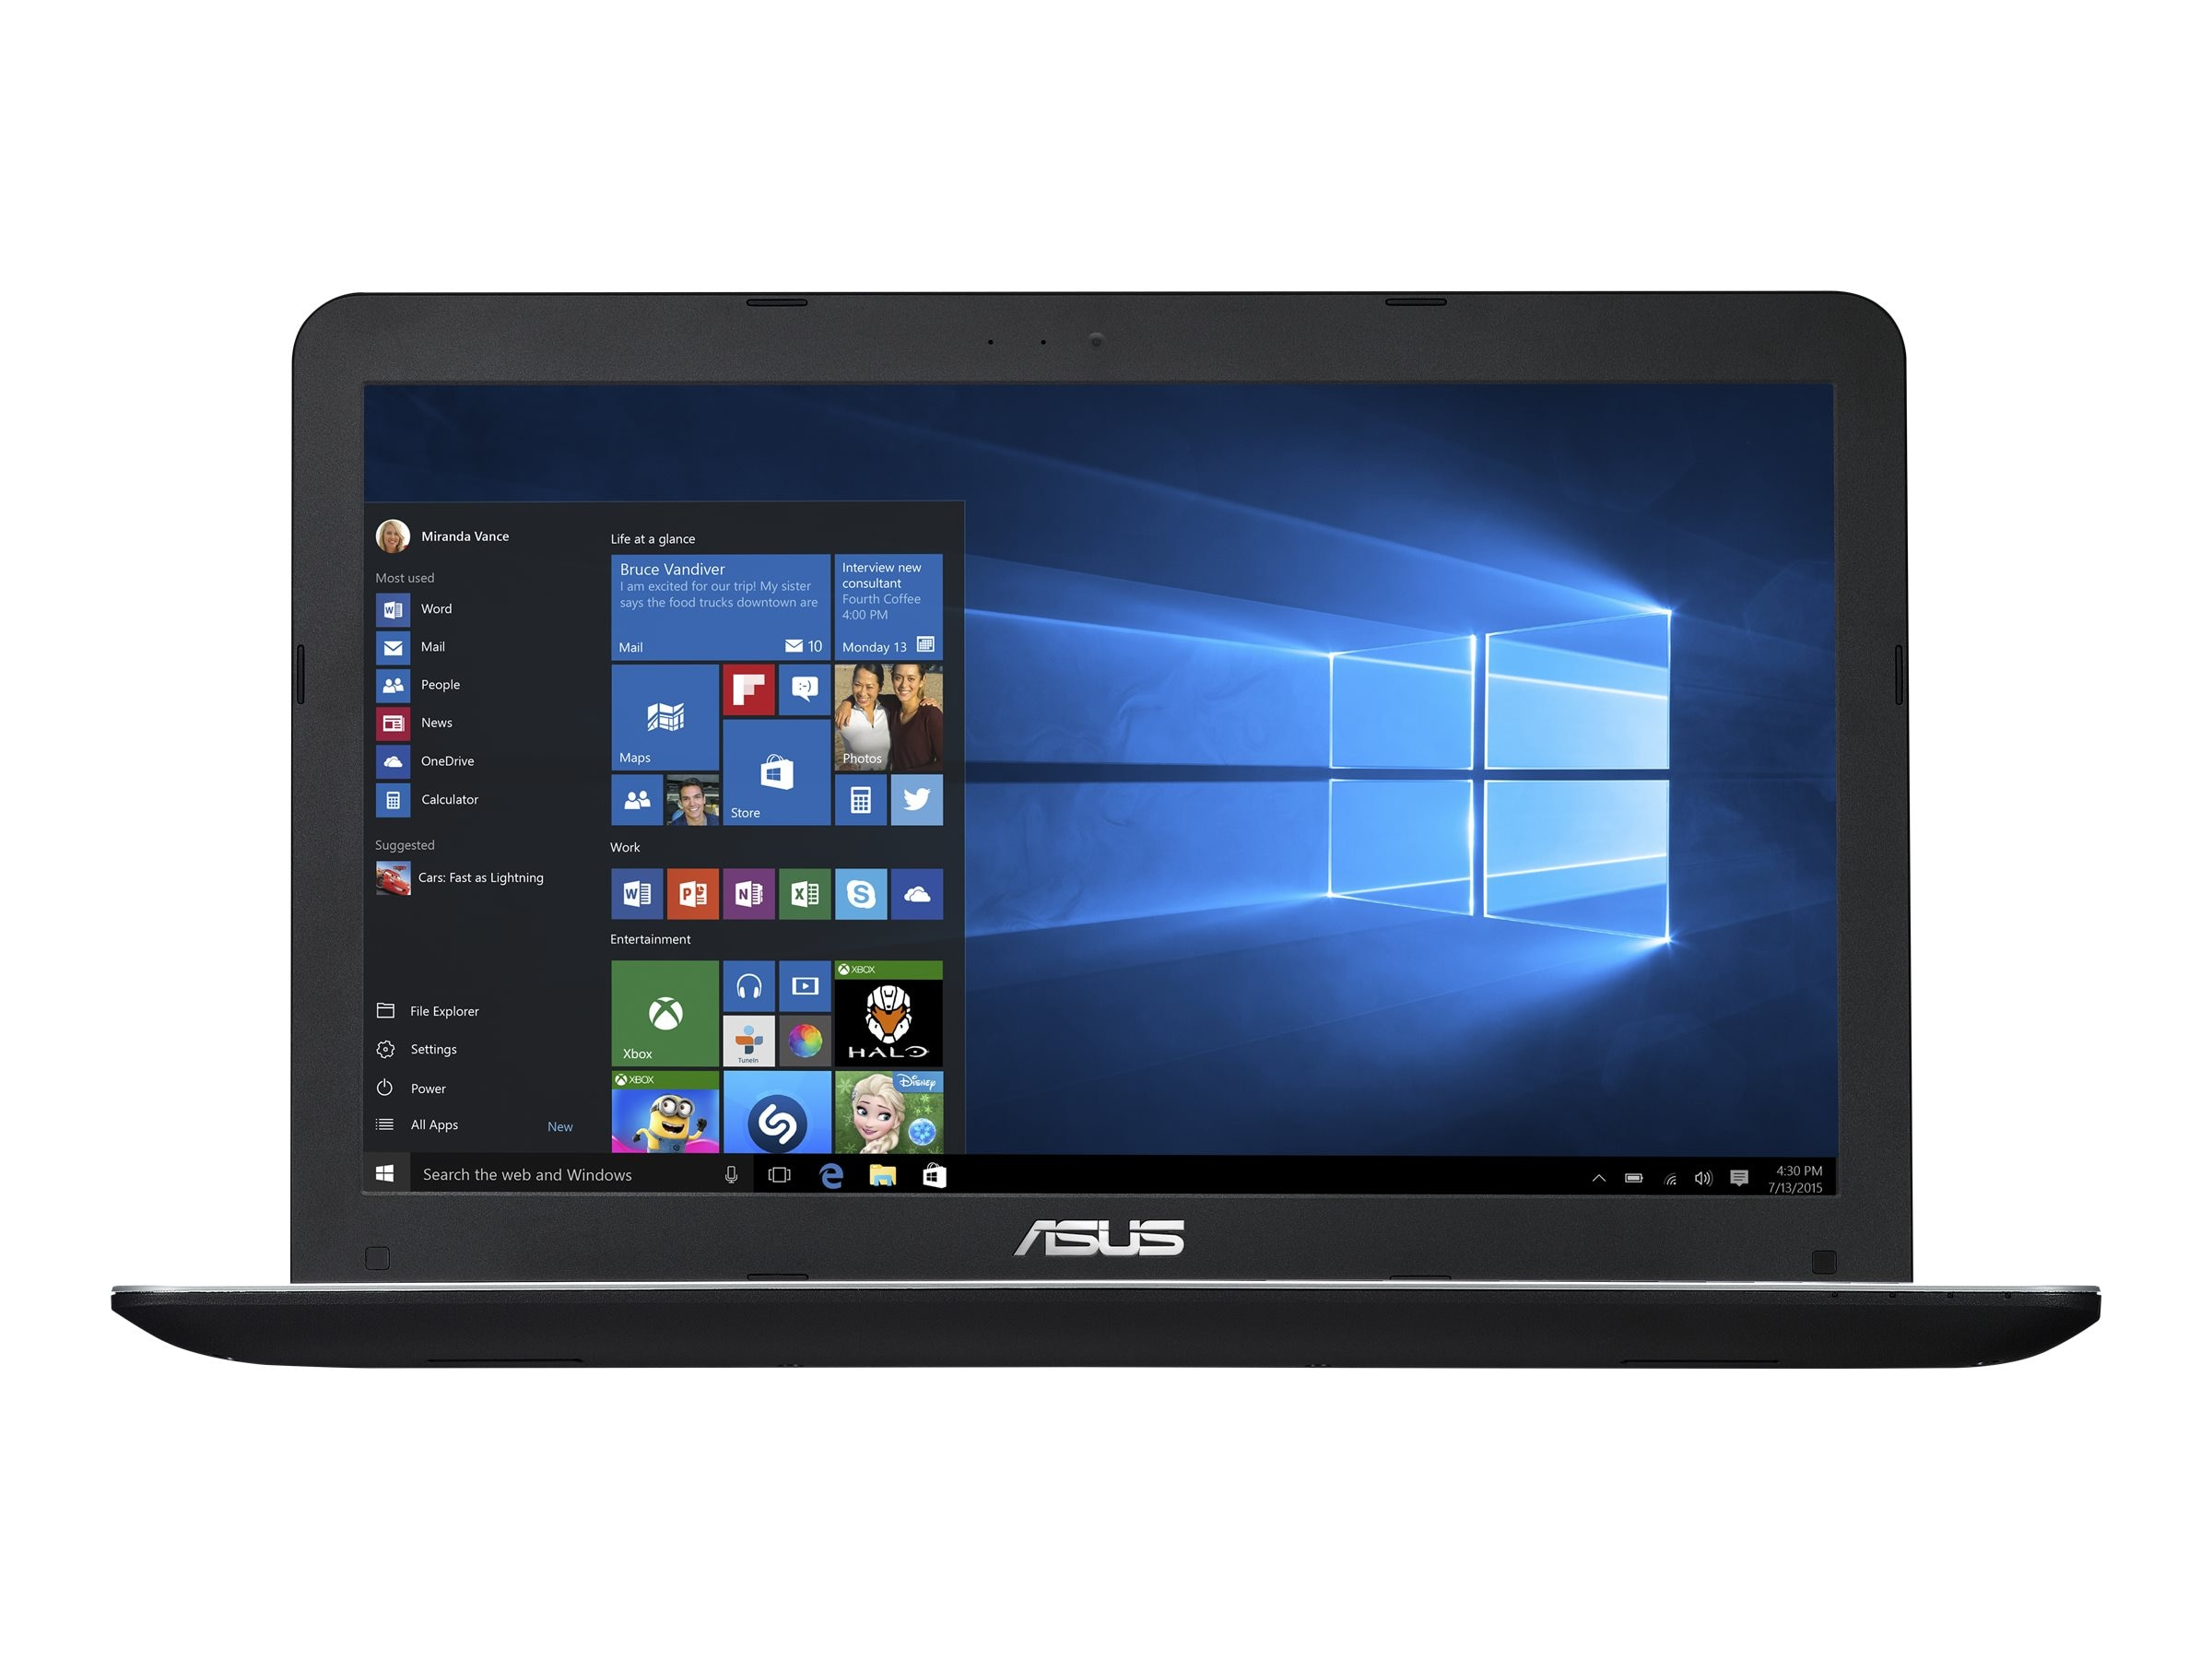 Asus Notebook PC Core i5-5200U 2.2GHz 8GB 500GB, R556LA-RS51, 30817126, Notebooks